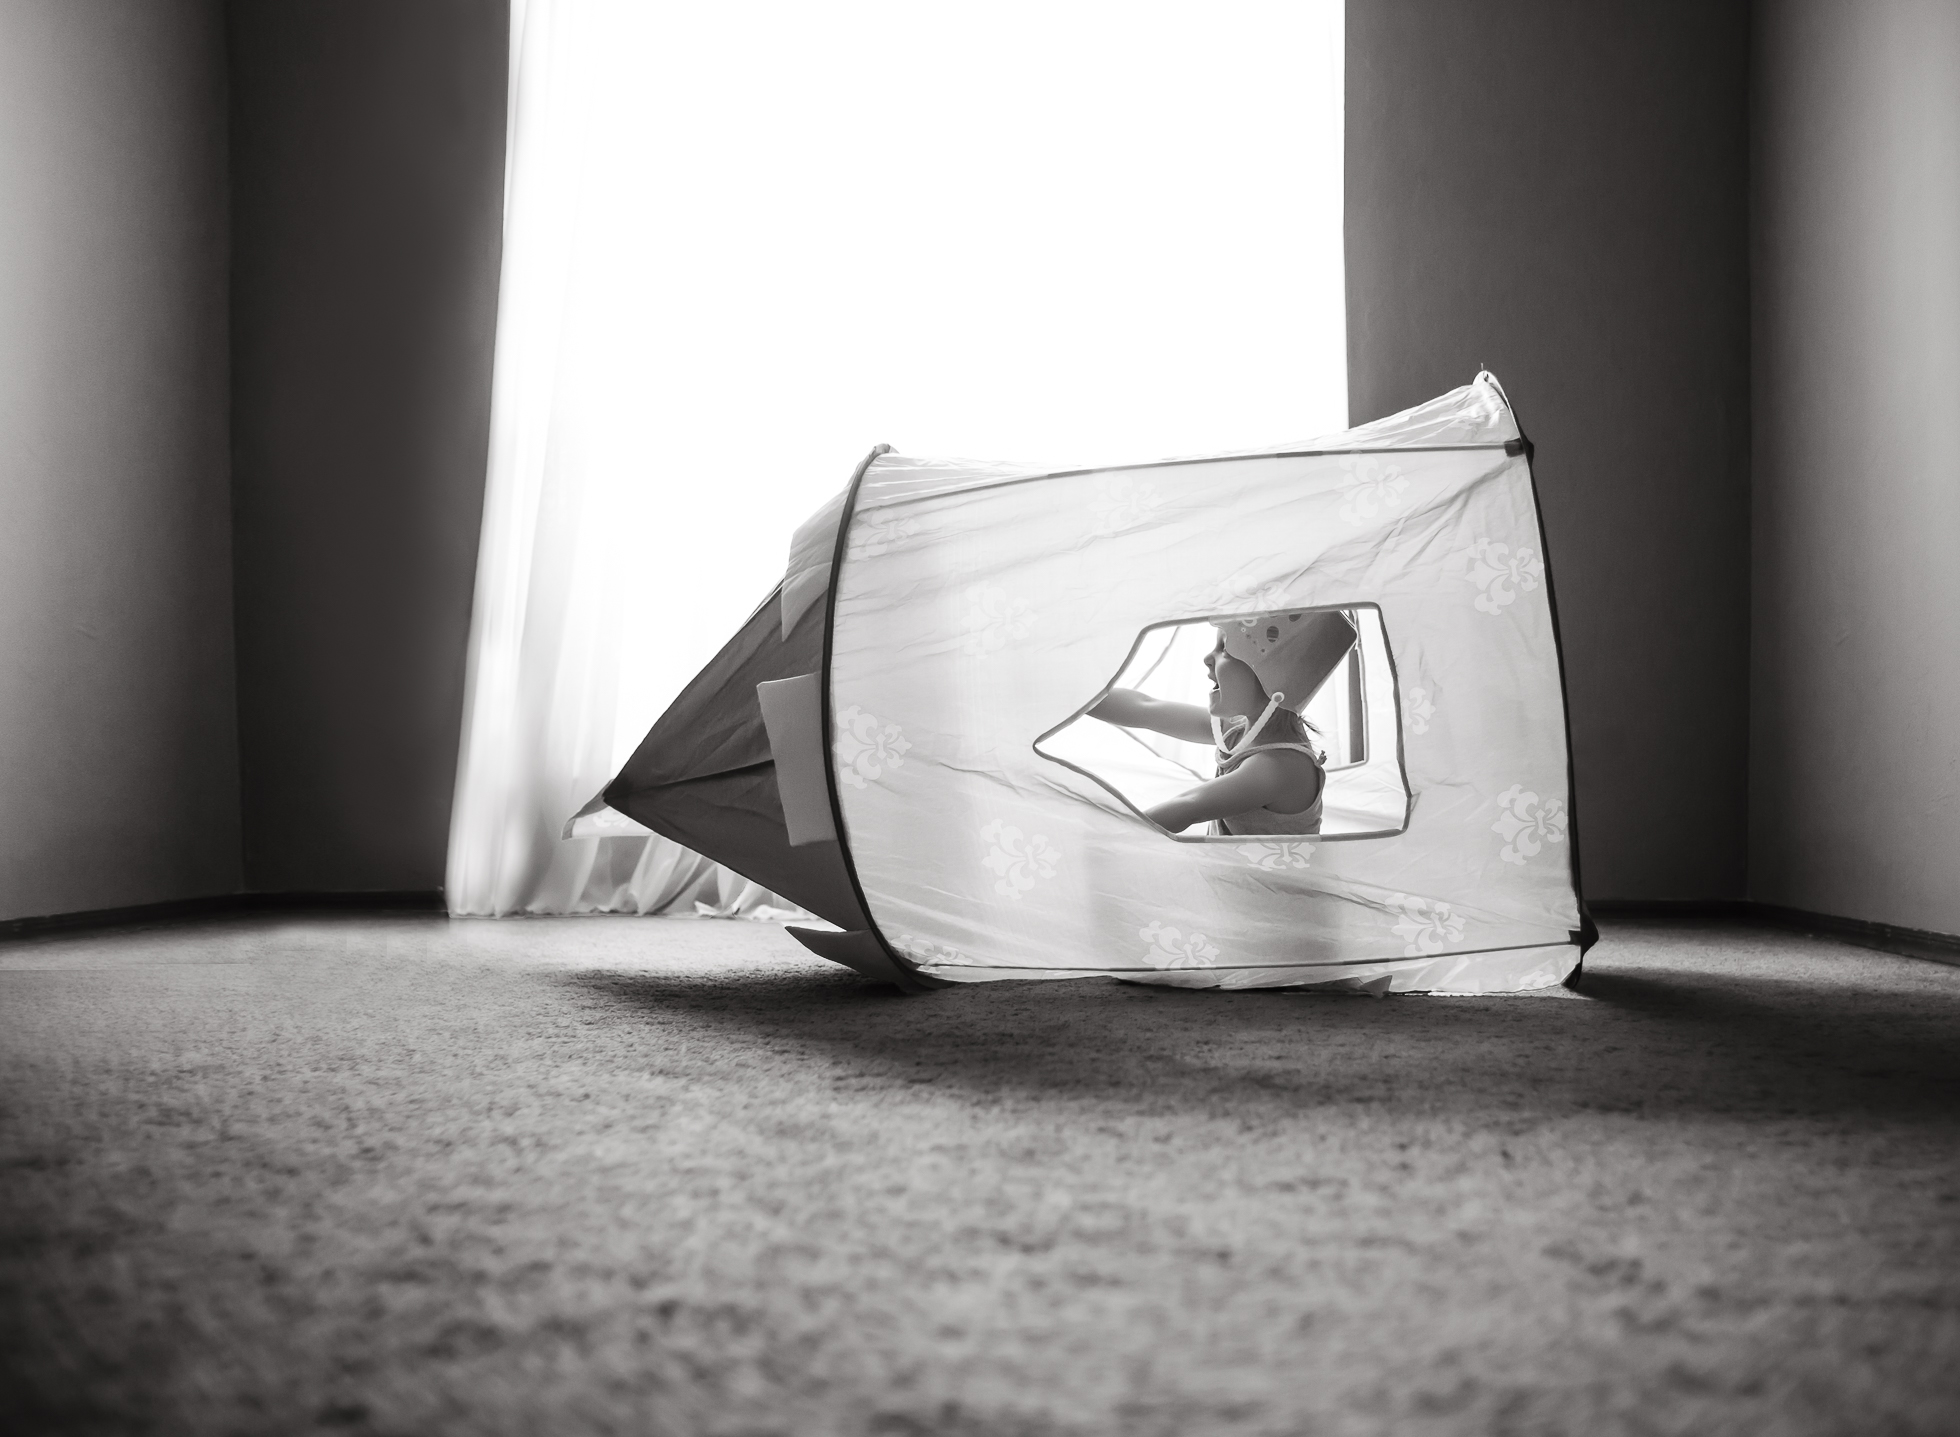 Blast off young girl playing in castle tent rocket ship imagination black and white edmond oklahoma